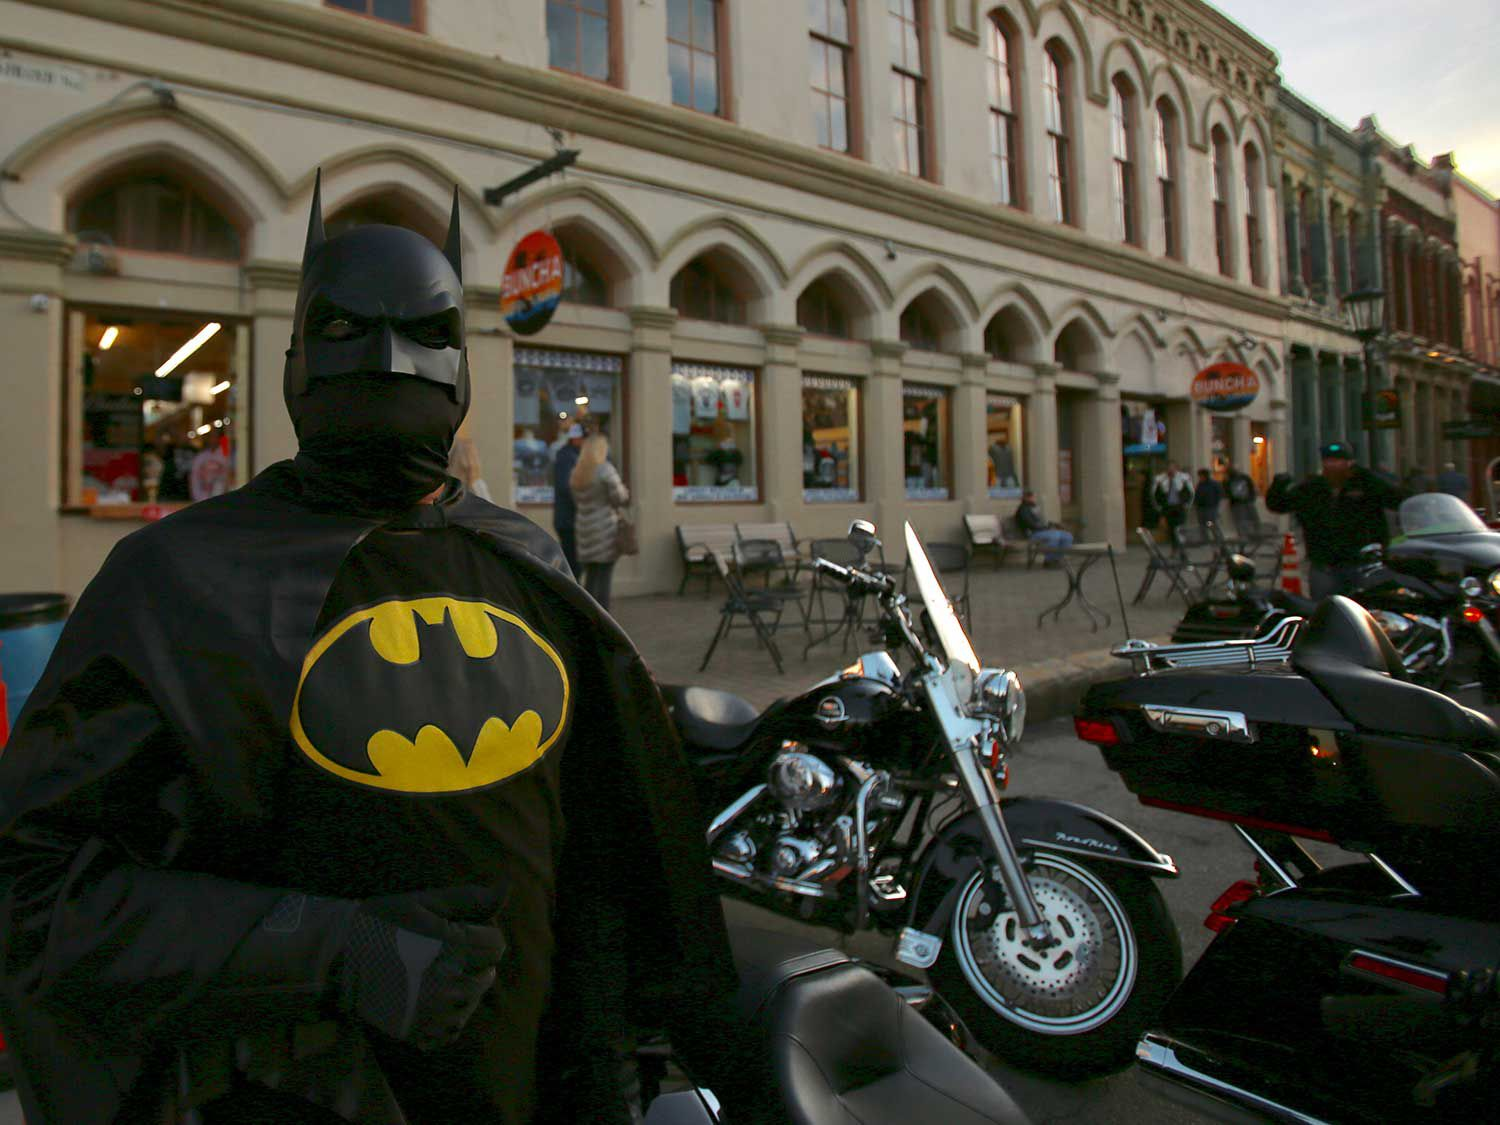 We were happy to see Batman, but had to wonder how well he could see through that mask…